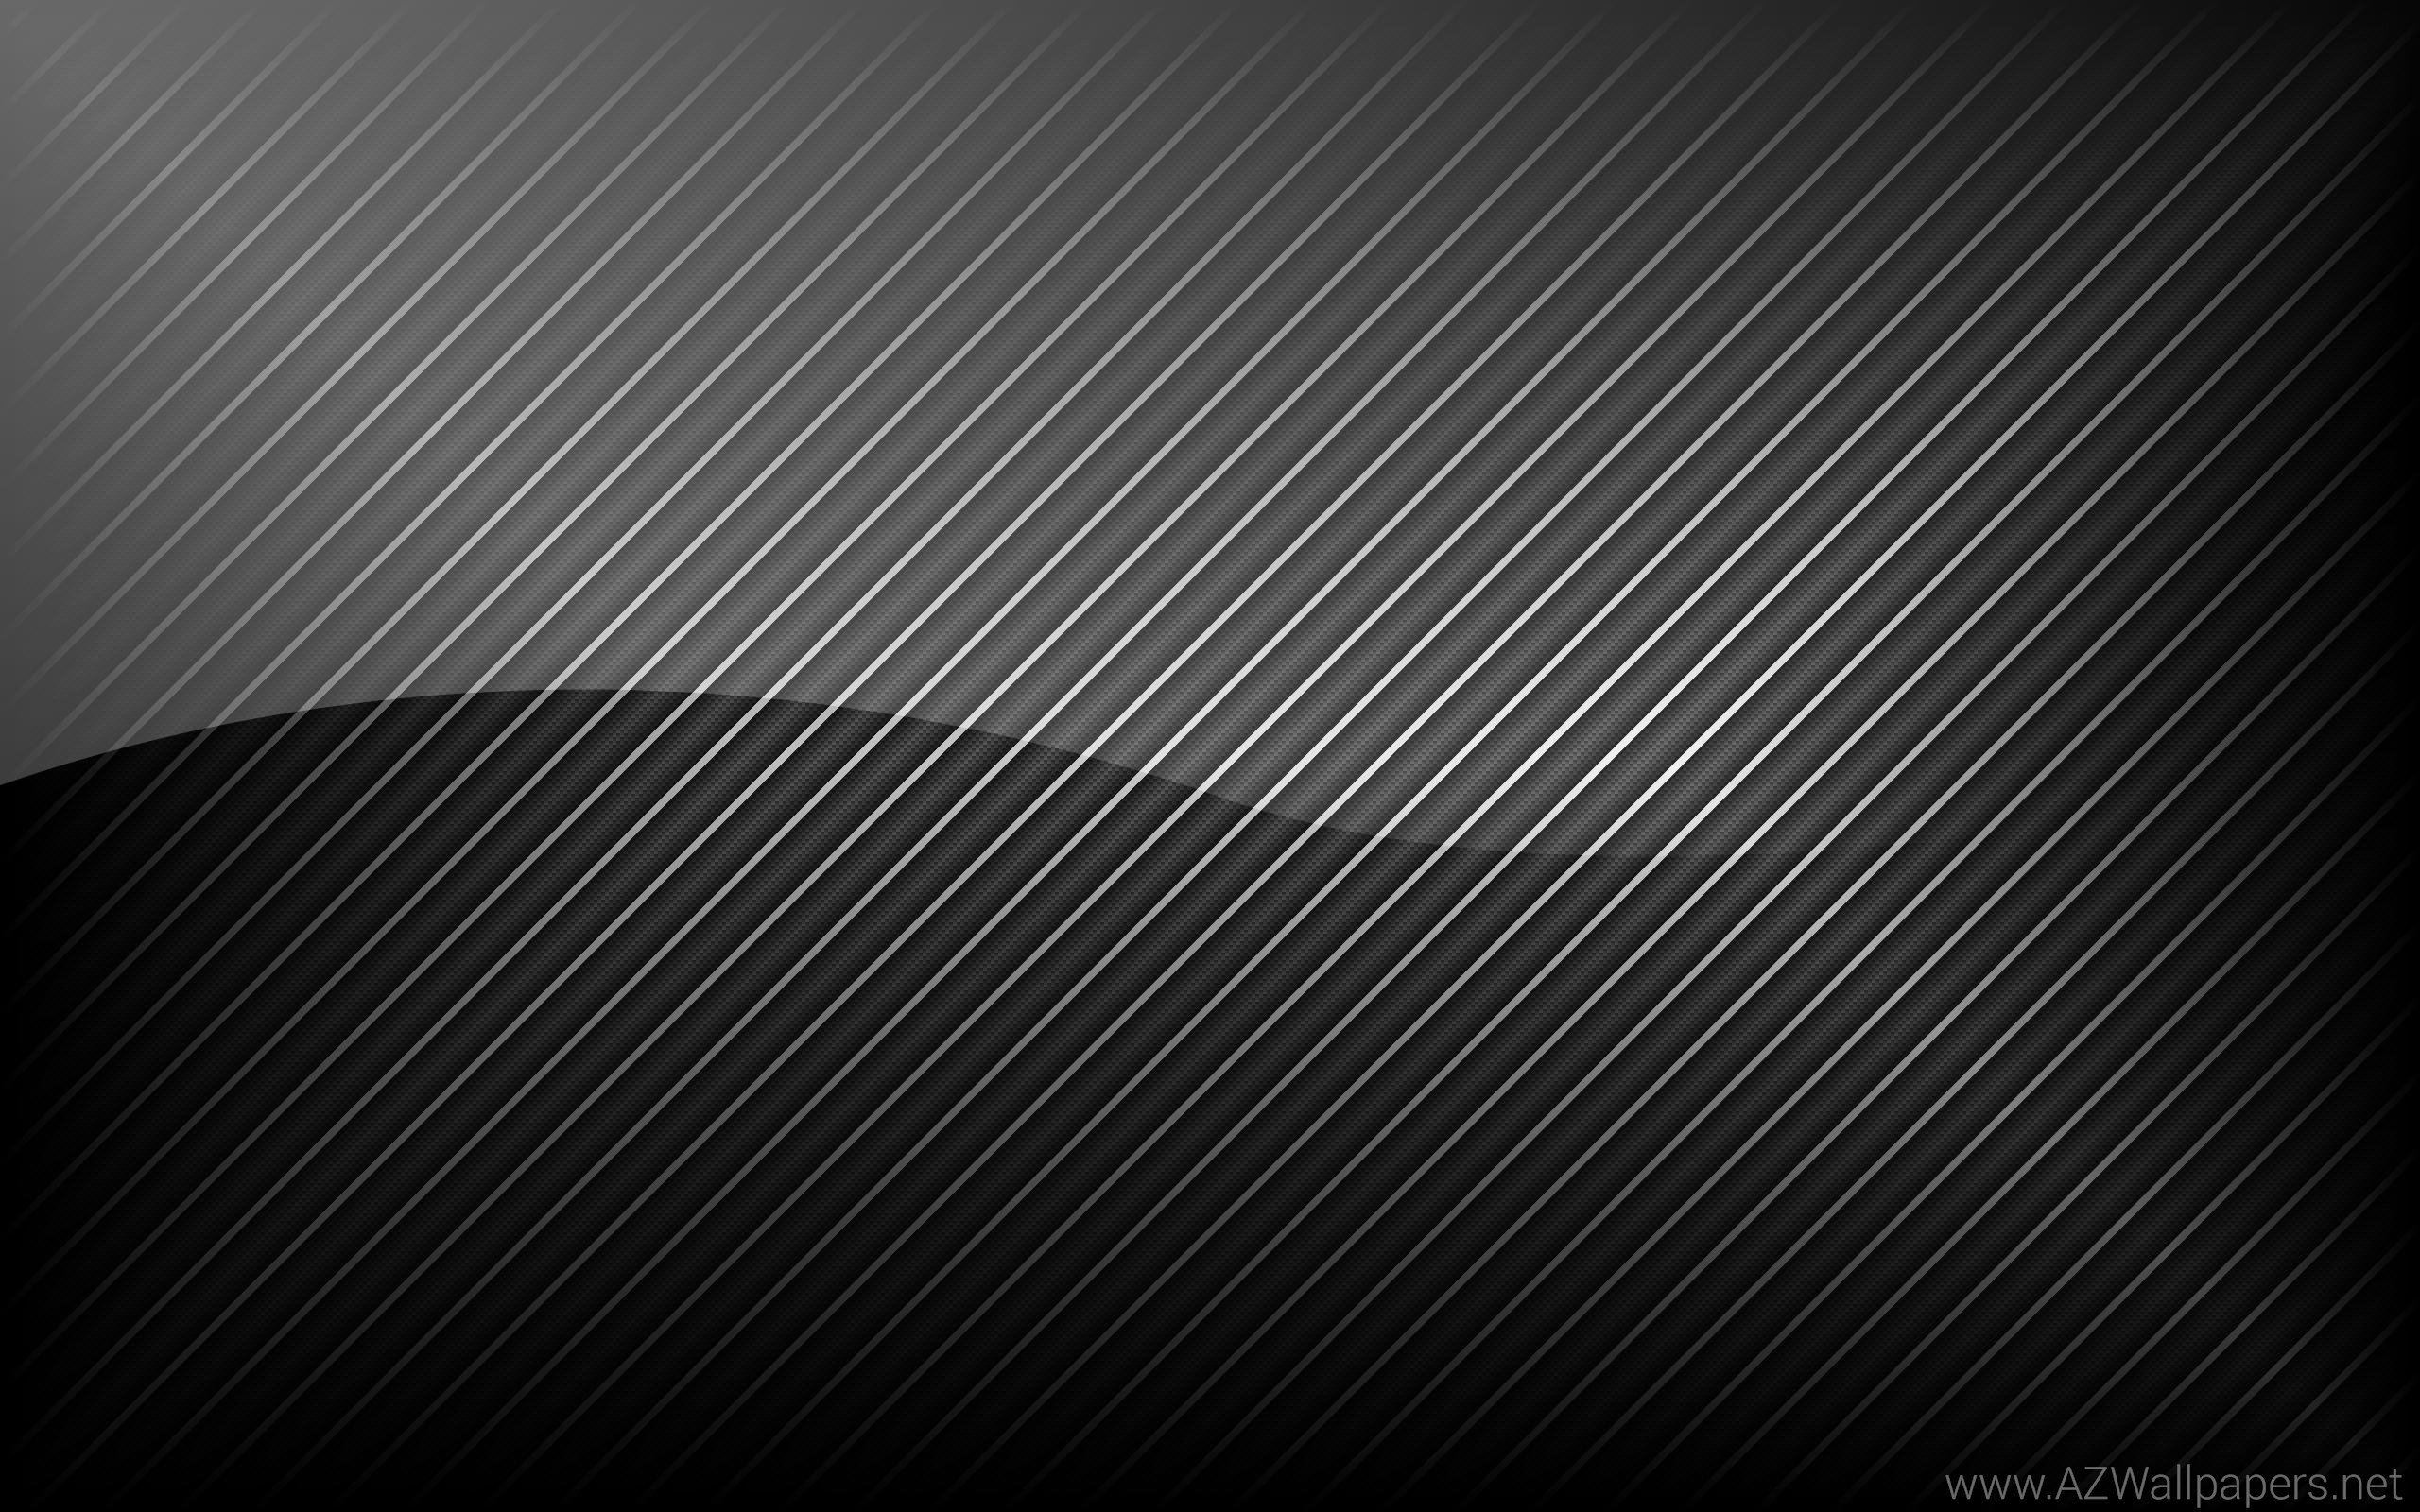 Carbon fiber wallpaper for iphone tv348. Carbon Wallpapers Wallpapers Cave